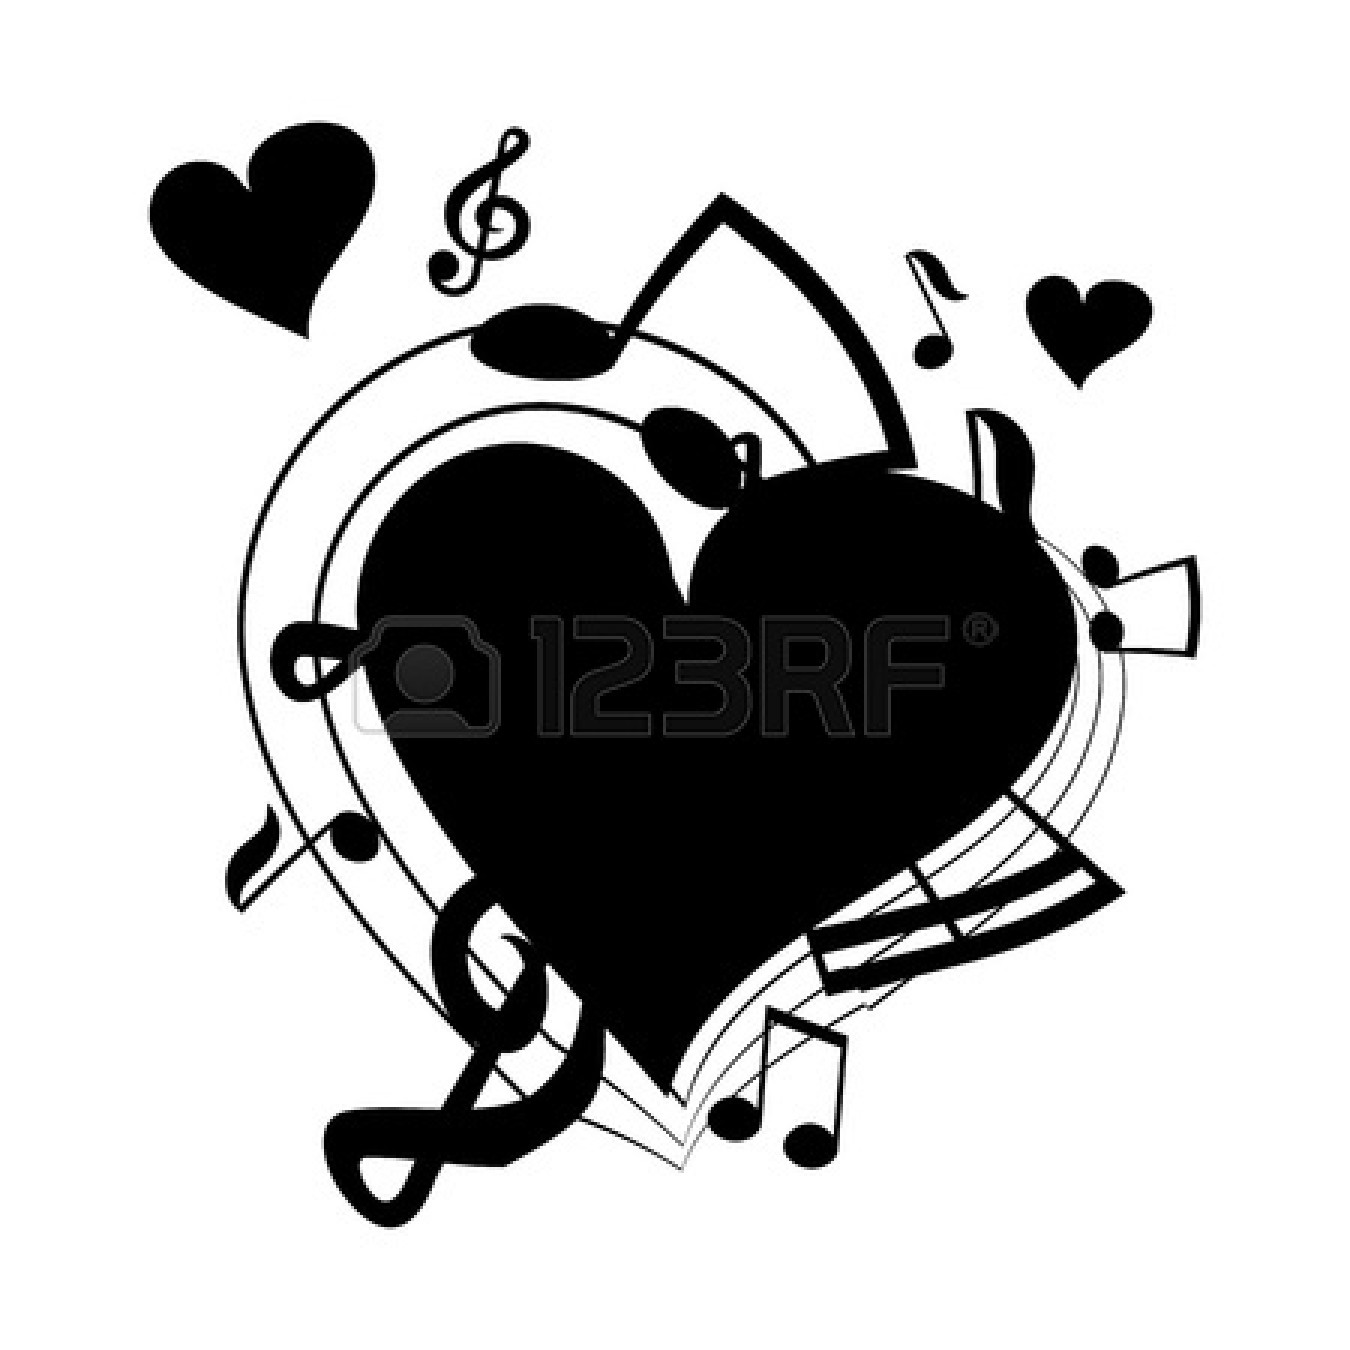 Heart-shaped clipart music notes Music Clipart Heart Heart Clipart